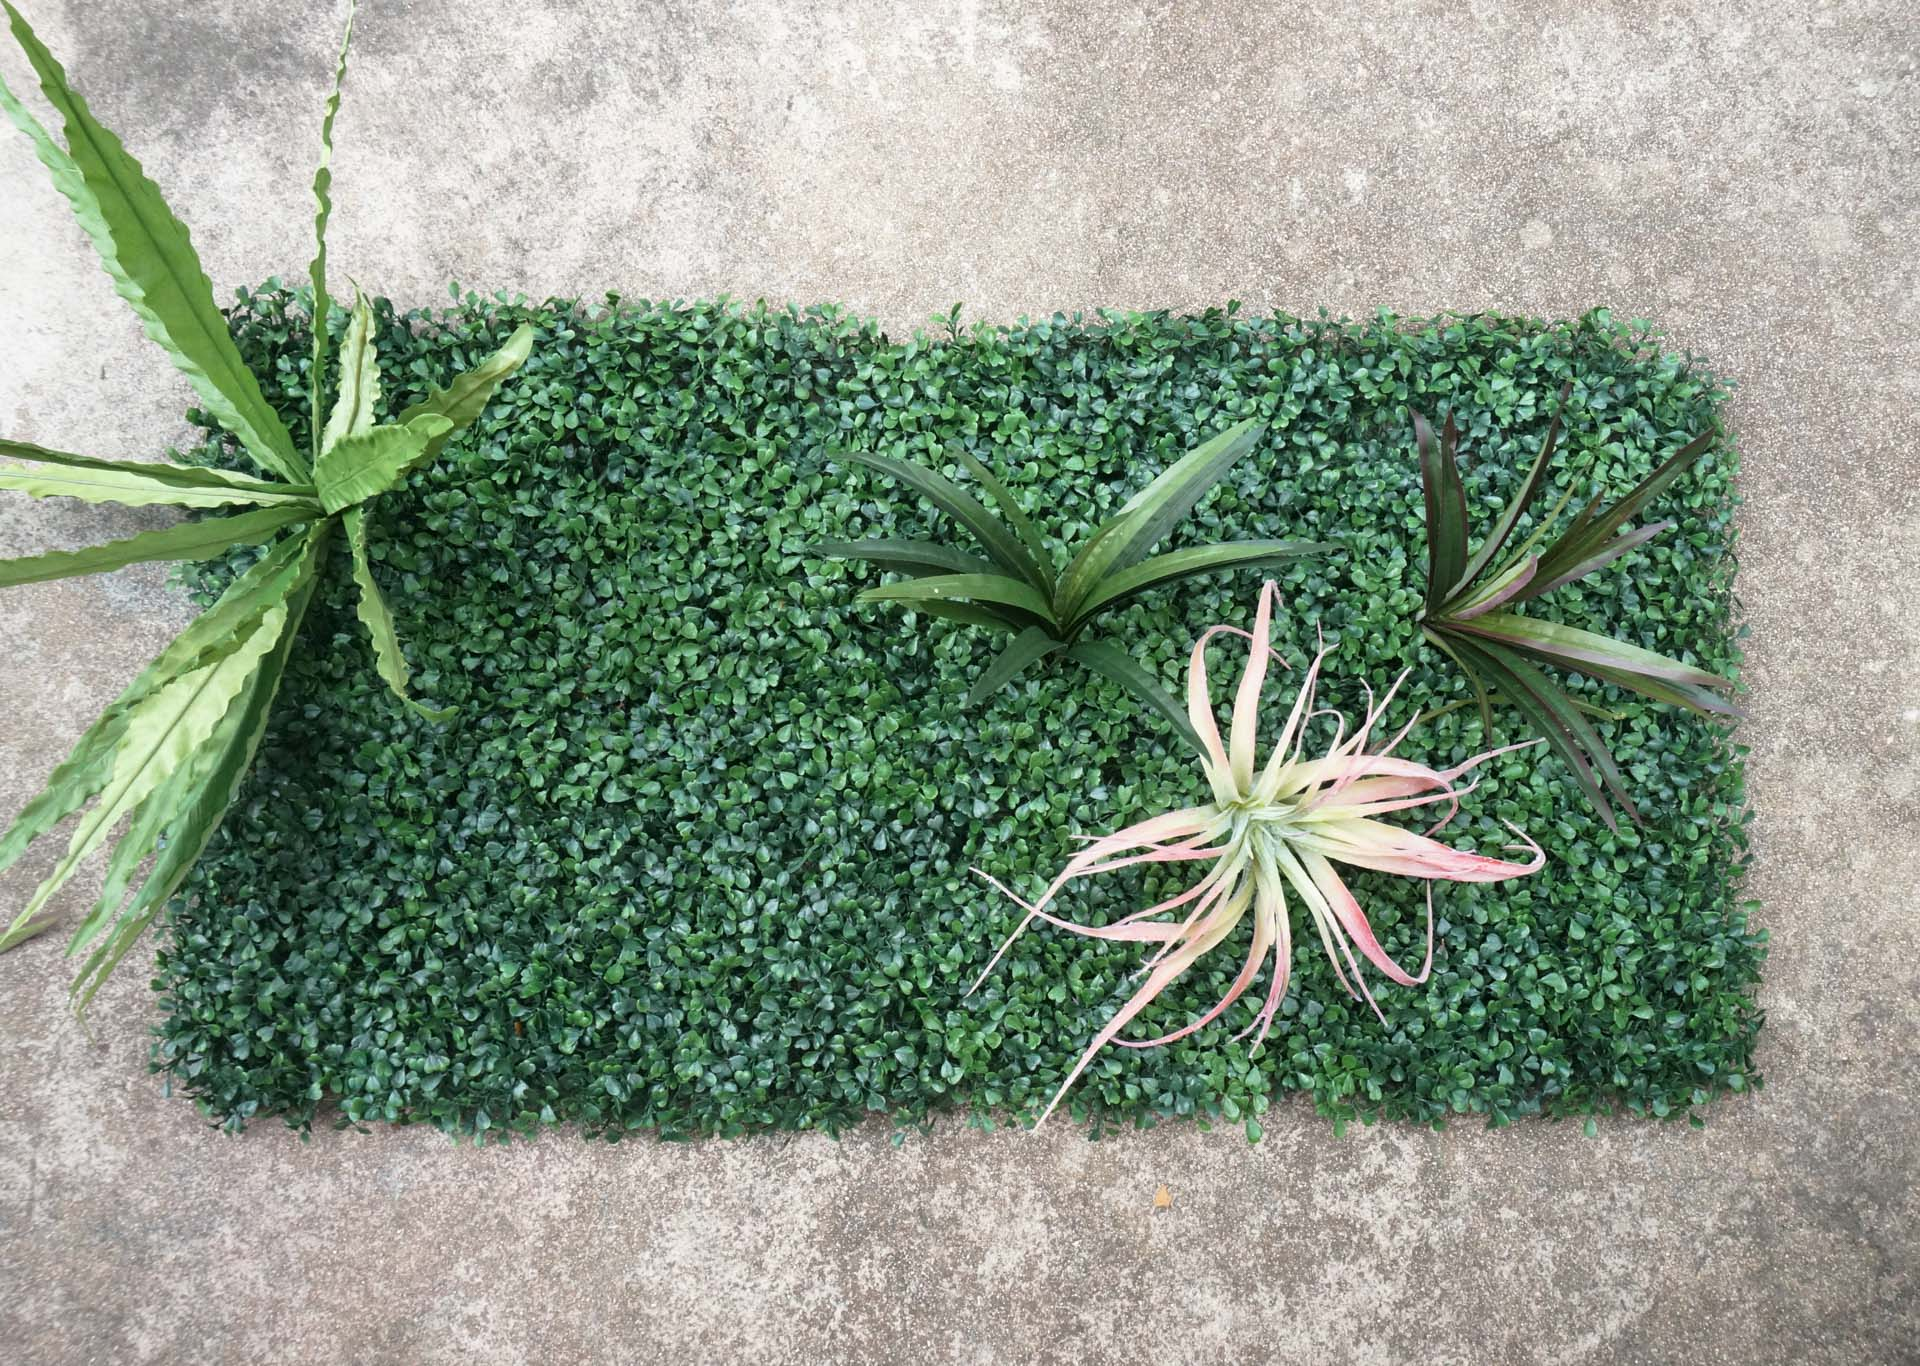 Begin-filling-in-your-living-wall-with-greenery